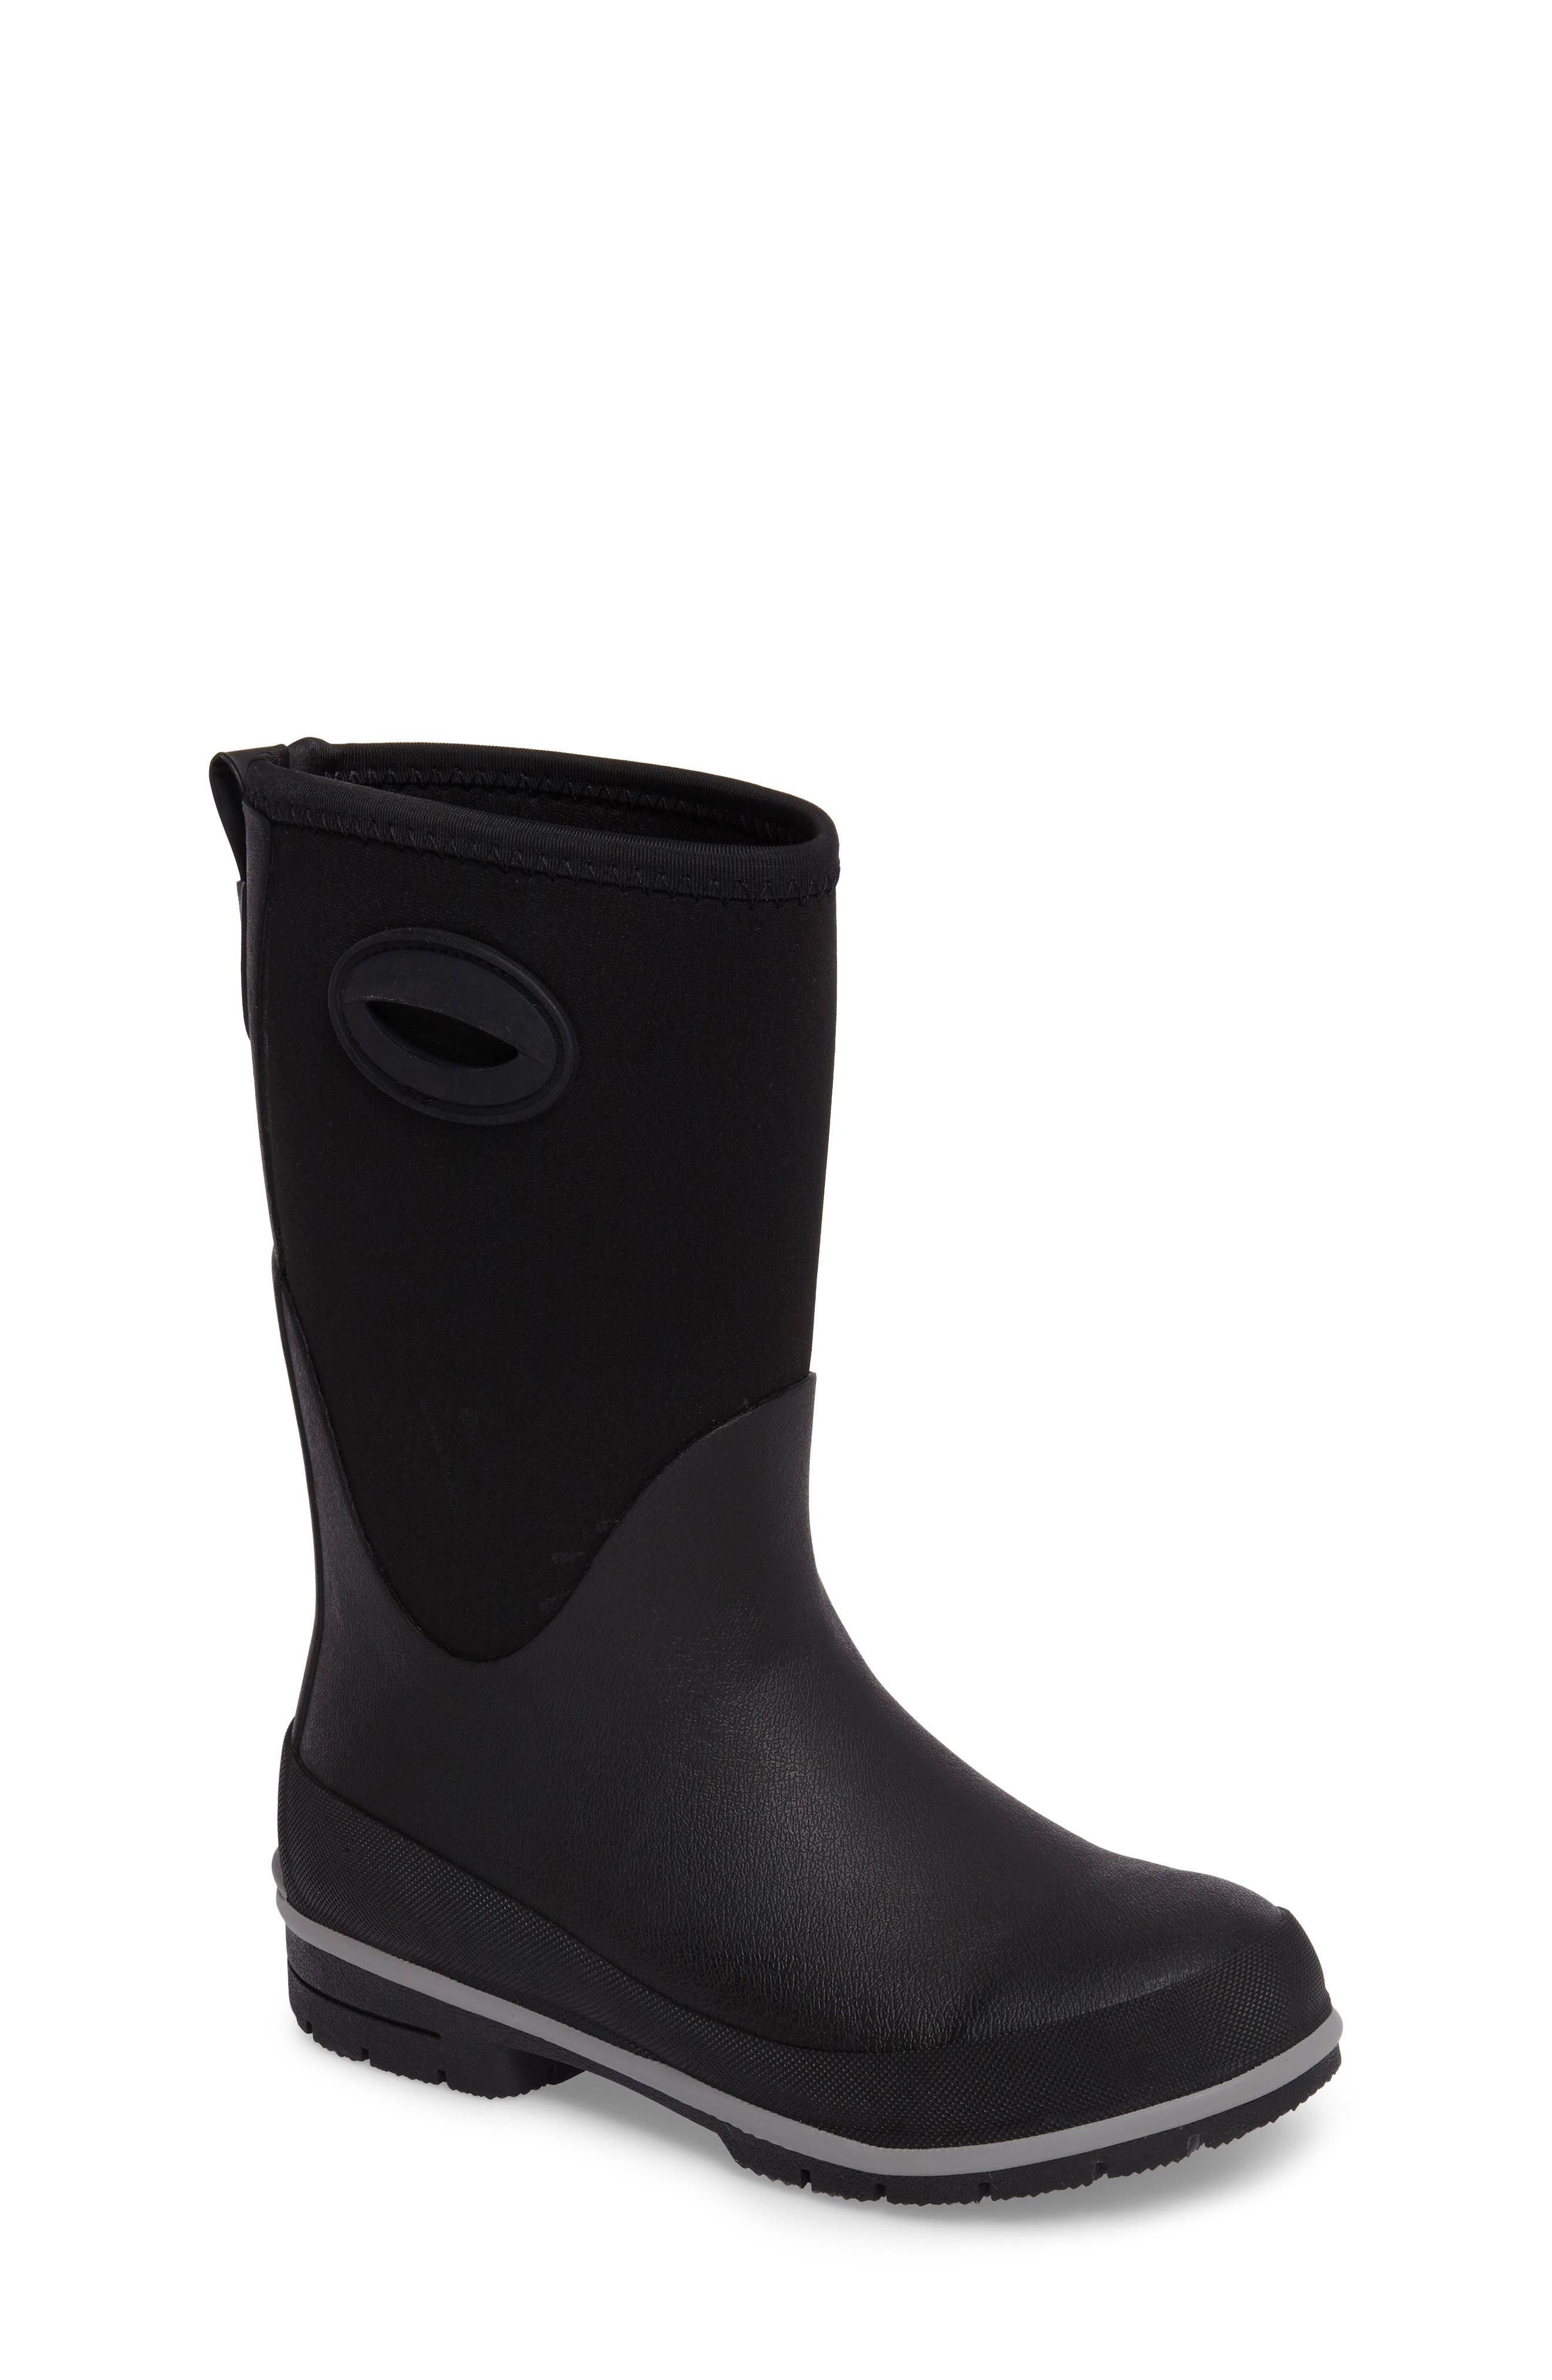 Alternate Image 1 Selected - Western Chief Neoprene Insulated Boot (Toddler, Little Kid & Big Kid)